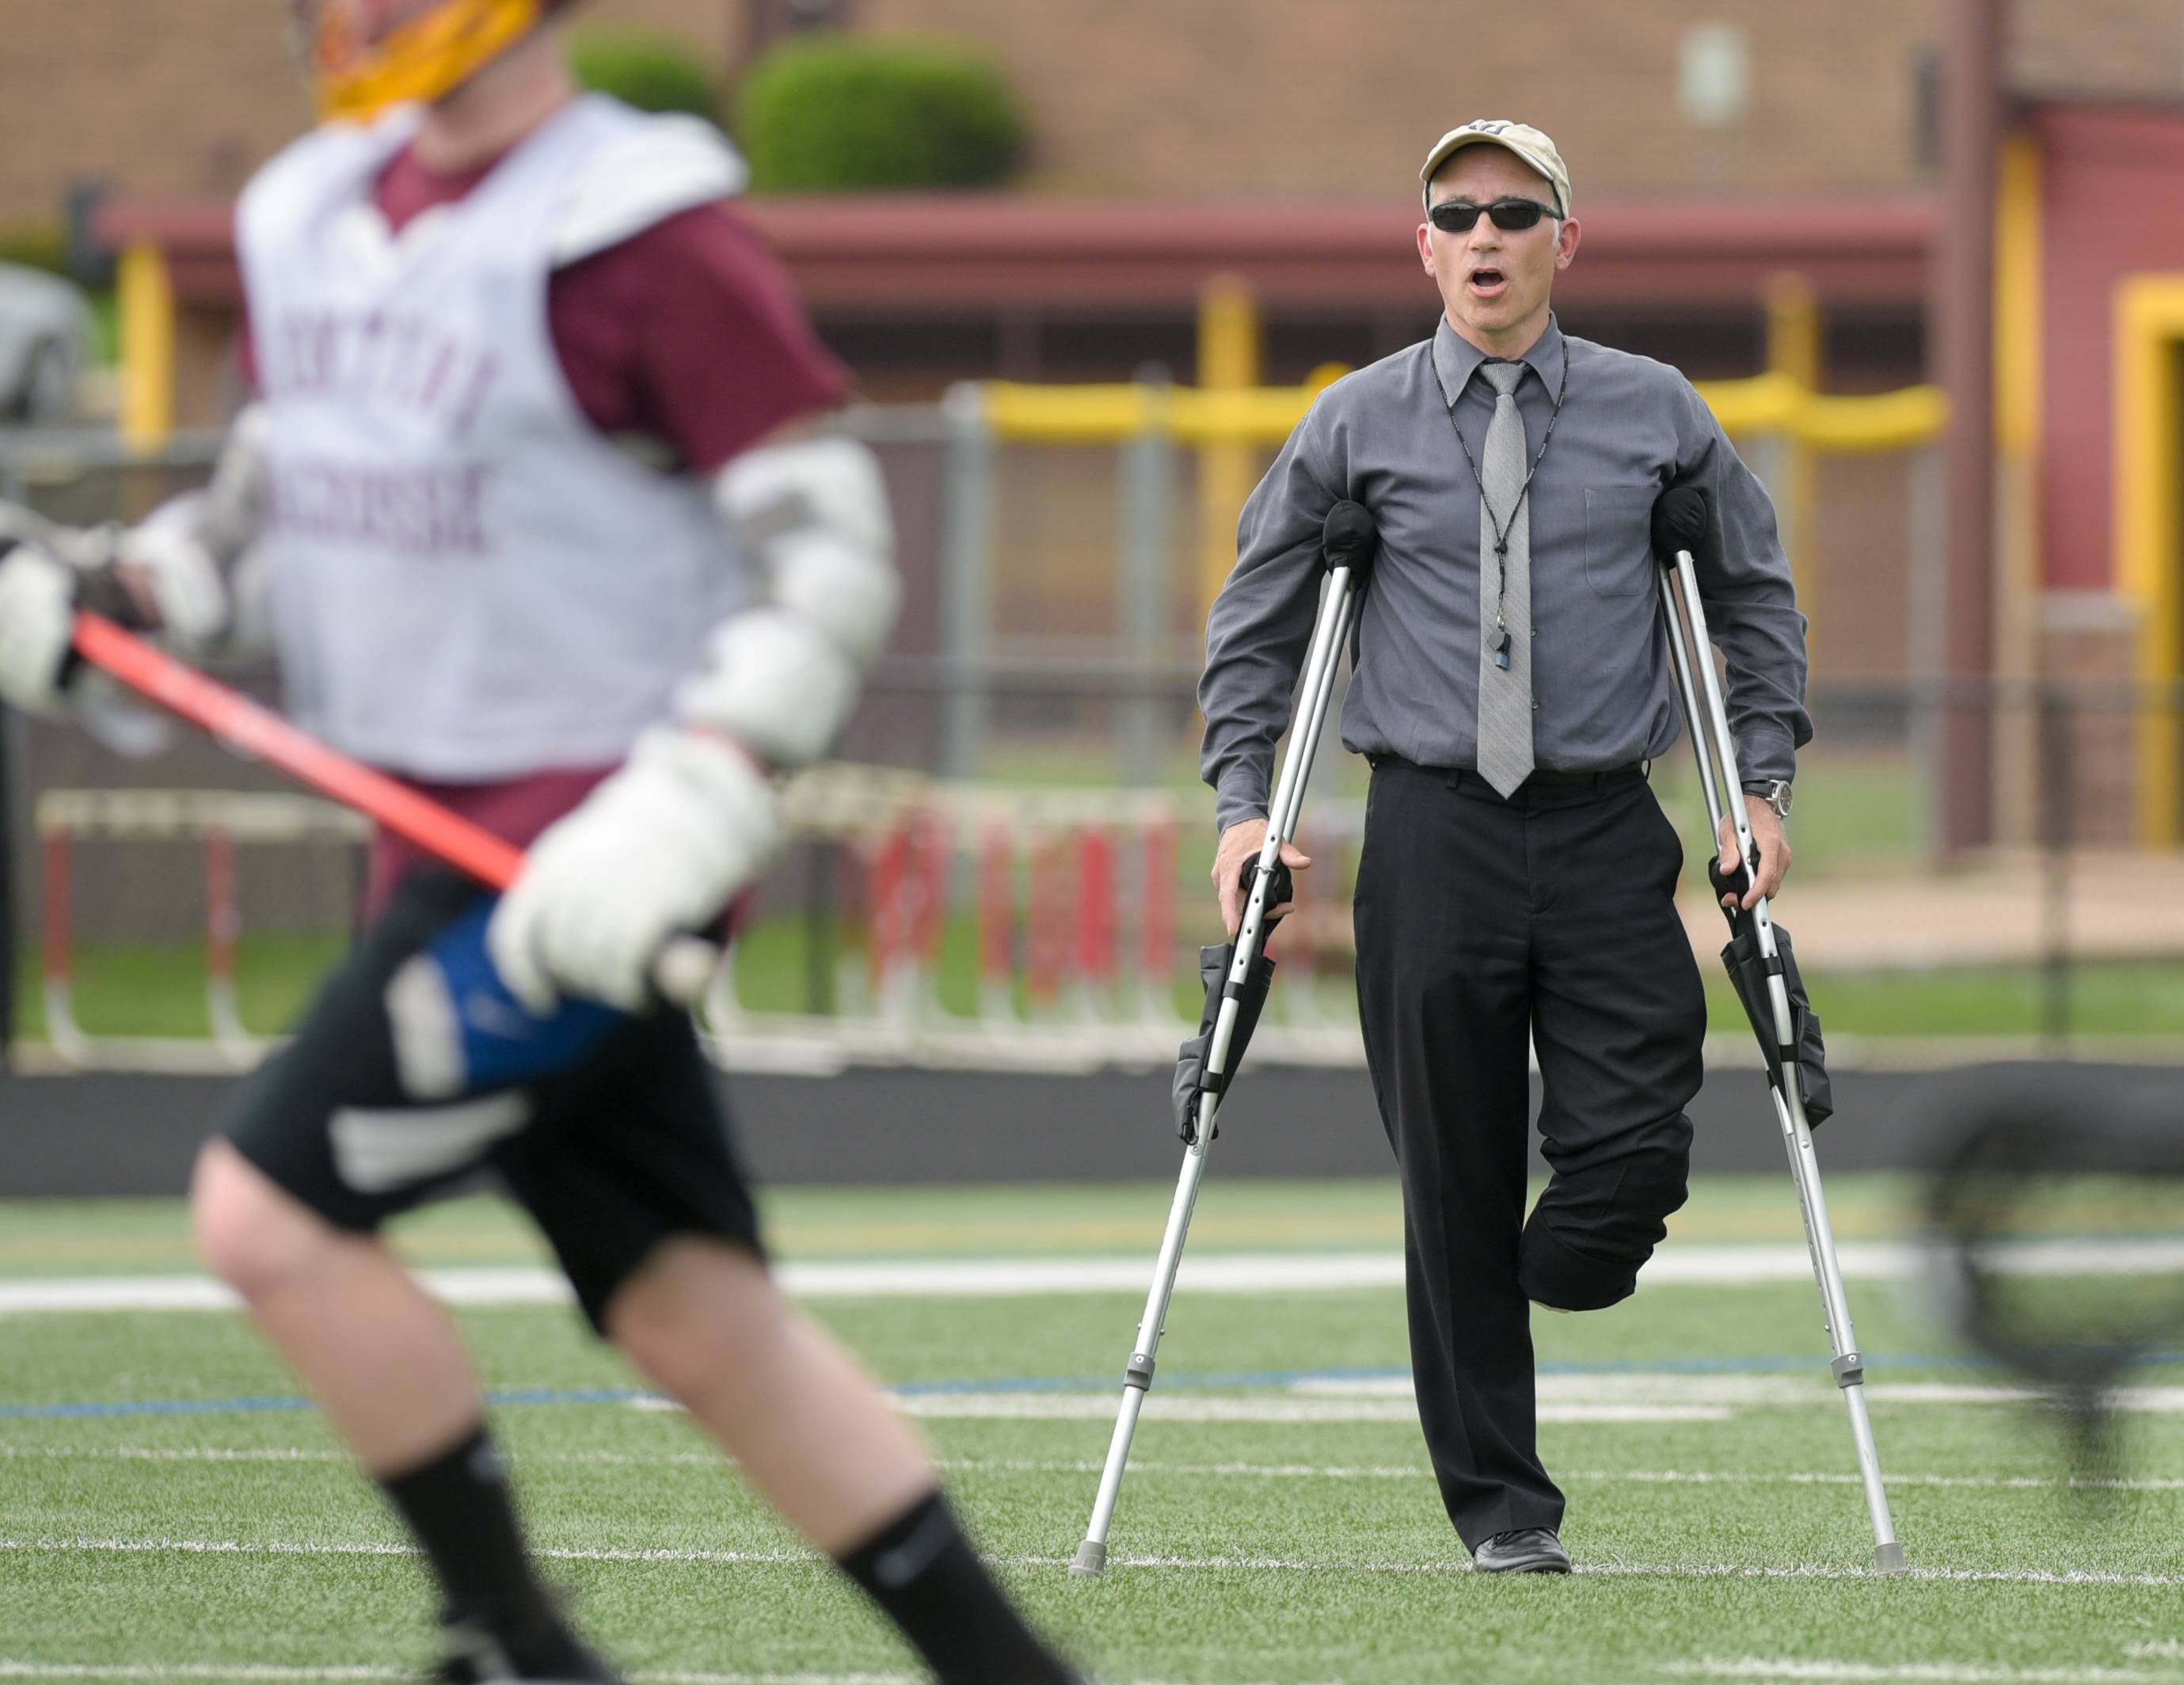 Michael Thuma, Montini boys lacrosse coach, who recently lost a leg to cancer but continues to coach.